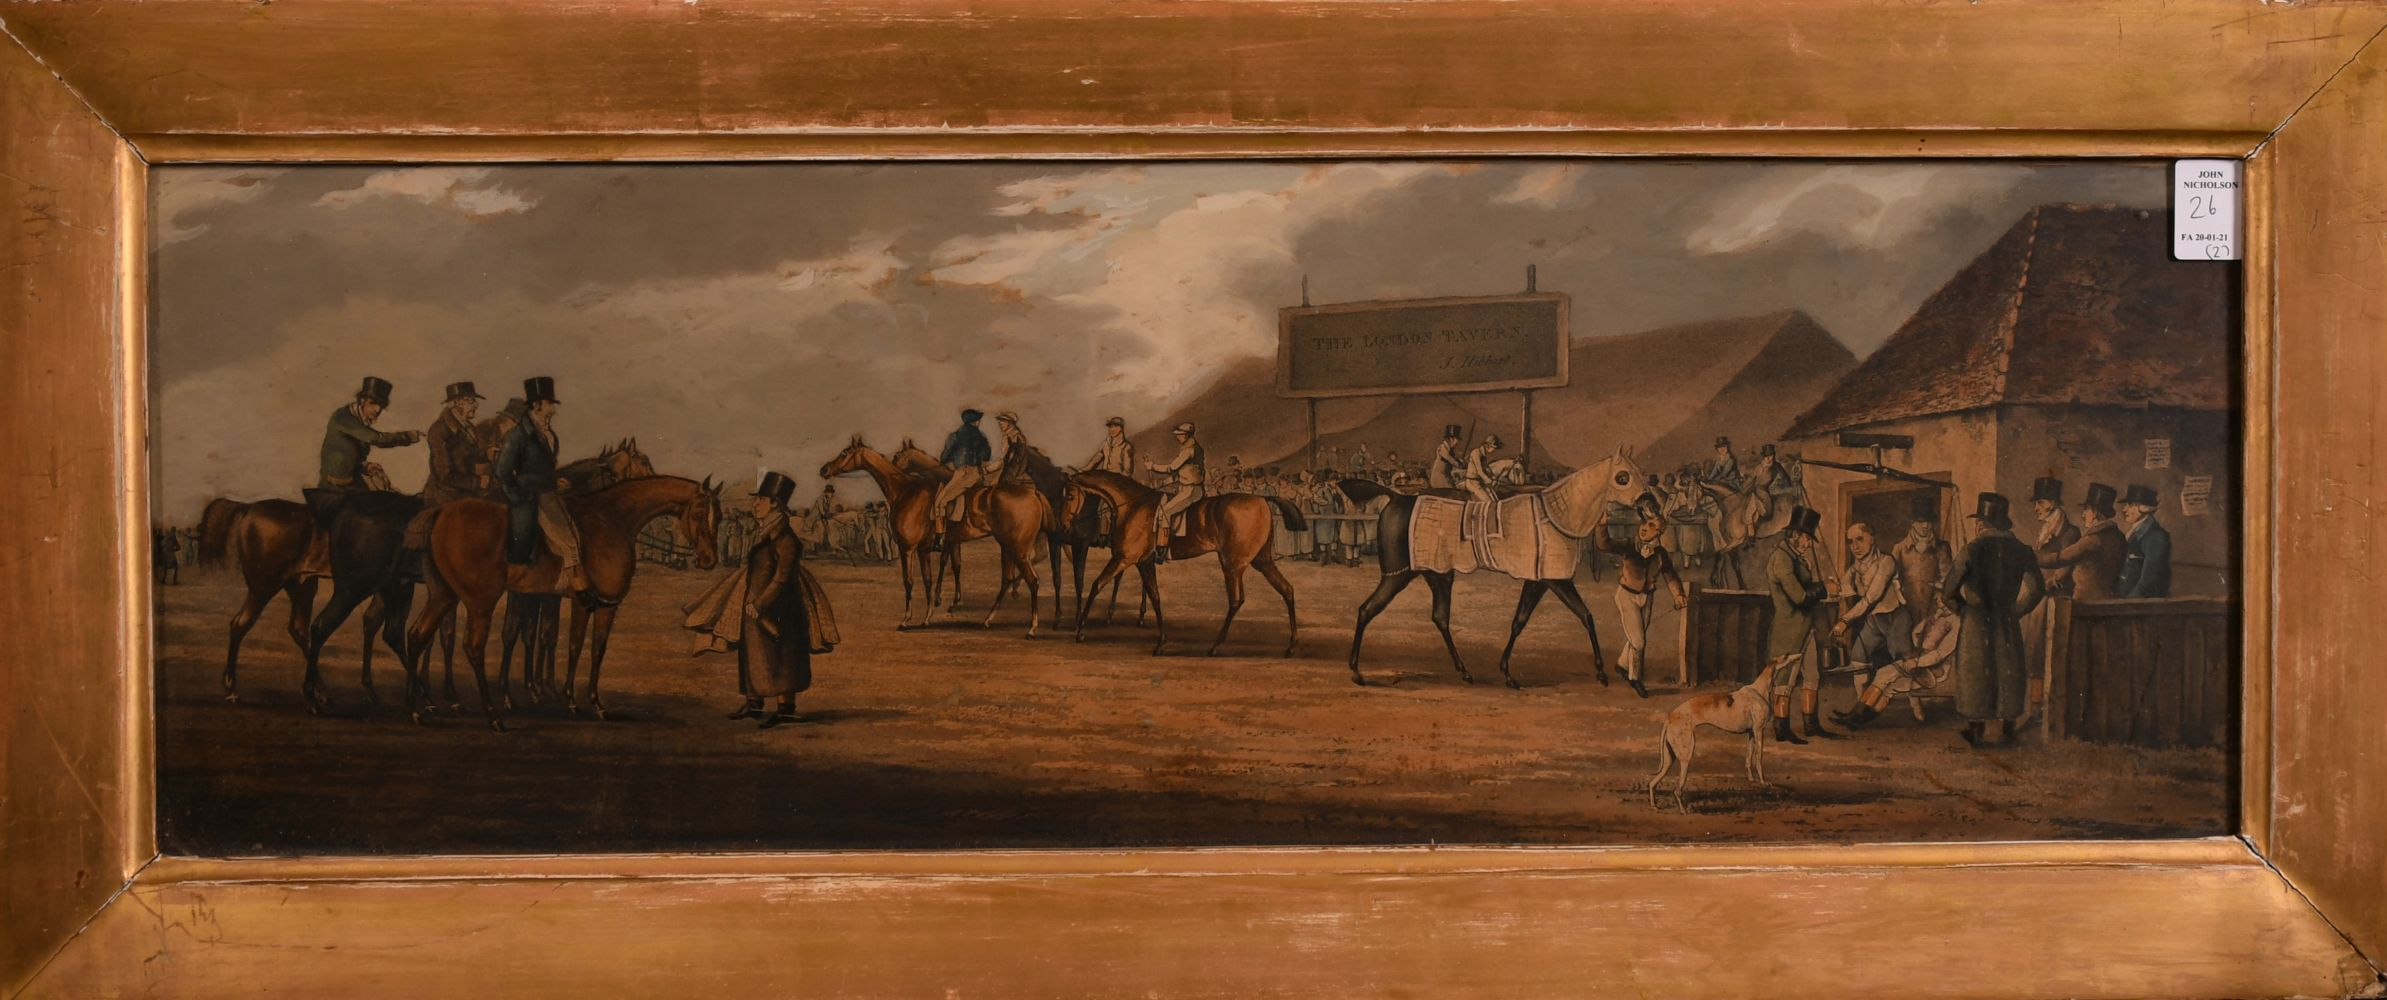 """A pair of 19th century coloured prints of horse meetings, each 8.5"""" x 26"""". - Image 4 of 4"""